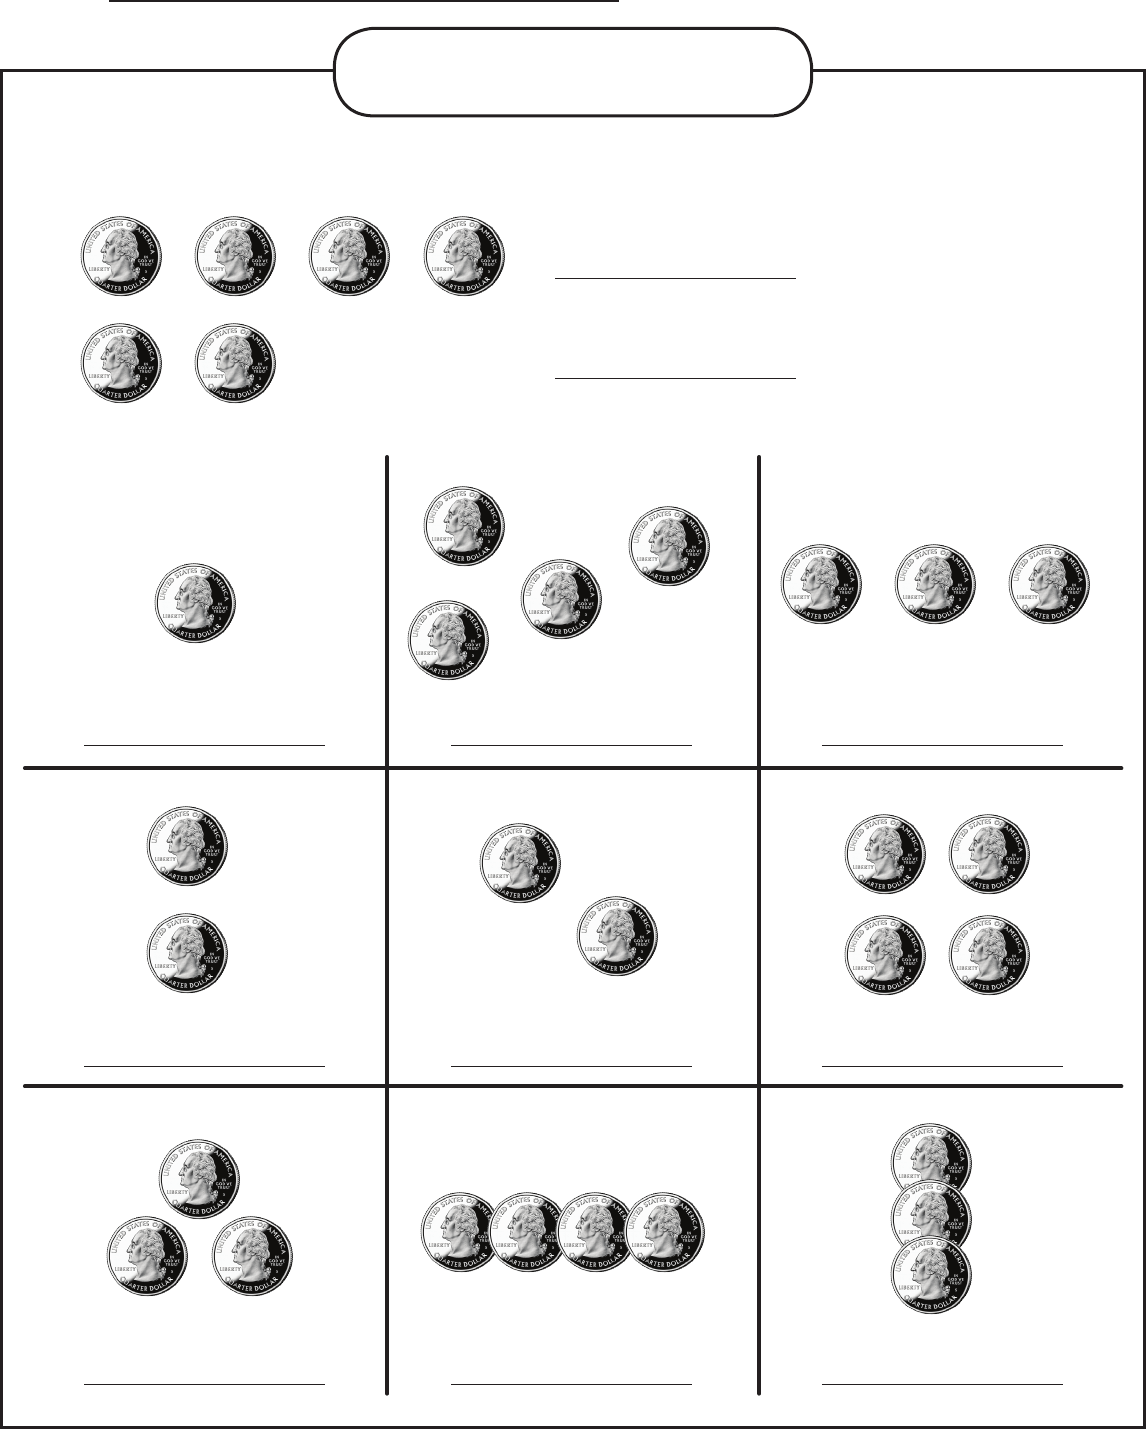 Download Counting Quarters Money Worksheets For Kids Template For Free